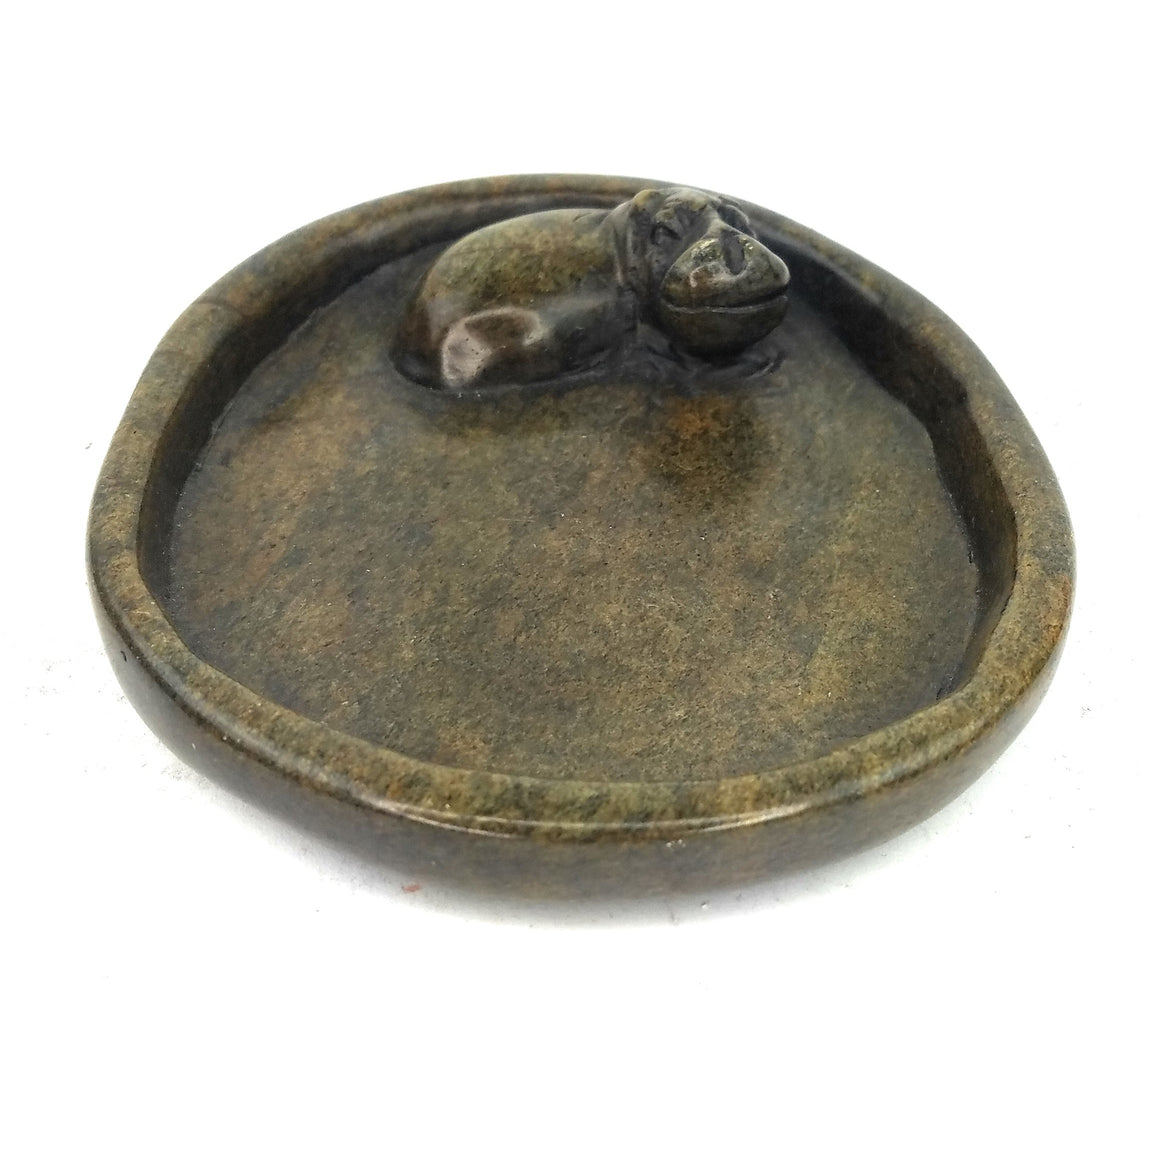 Hippo Soap/Ashtray Dish